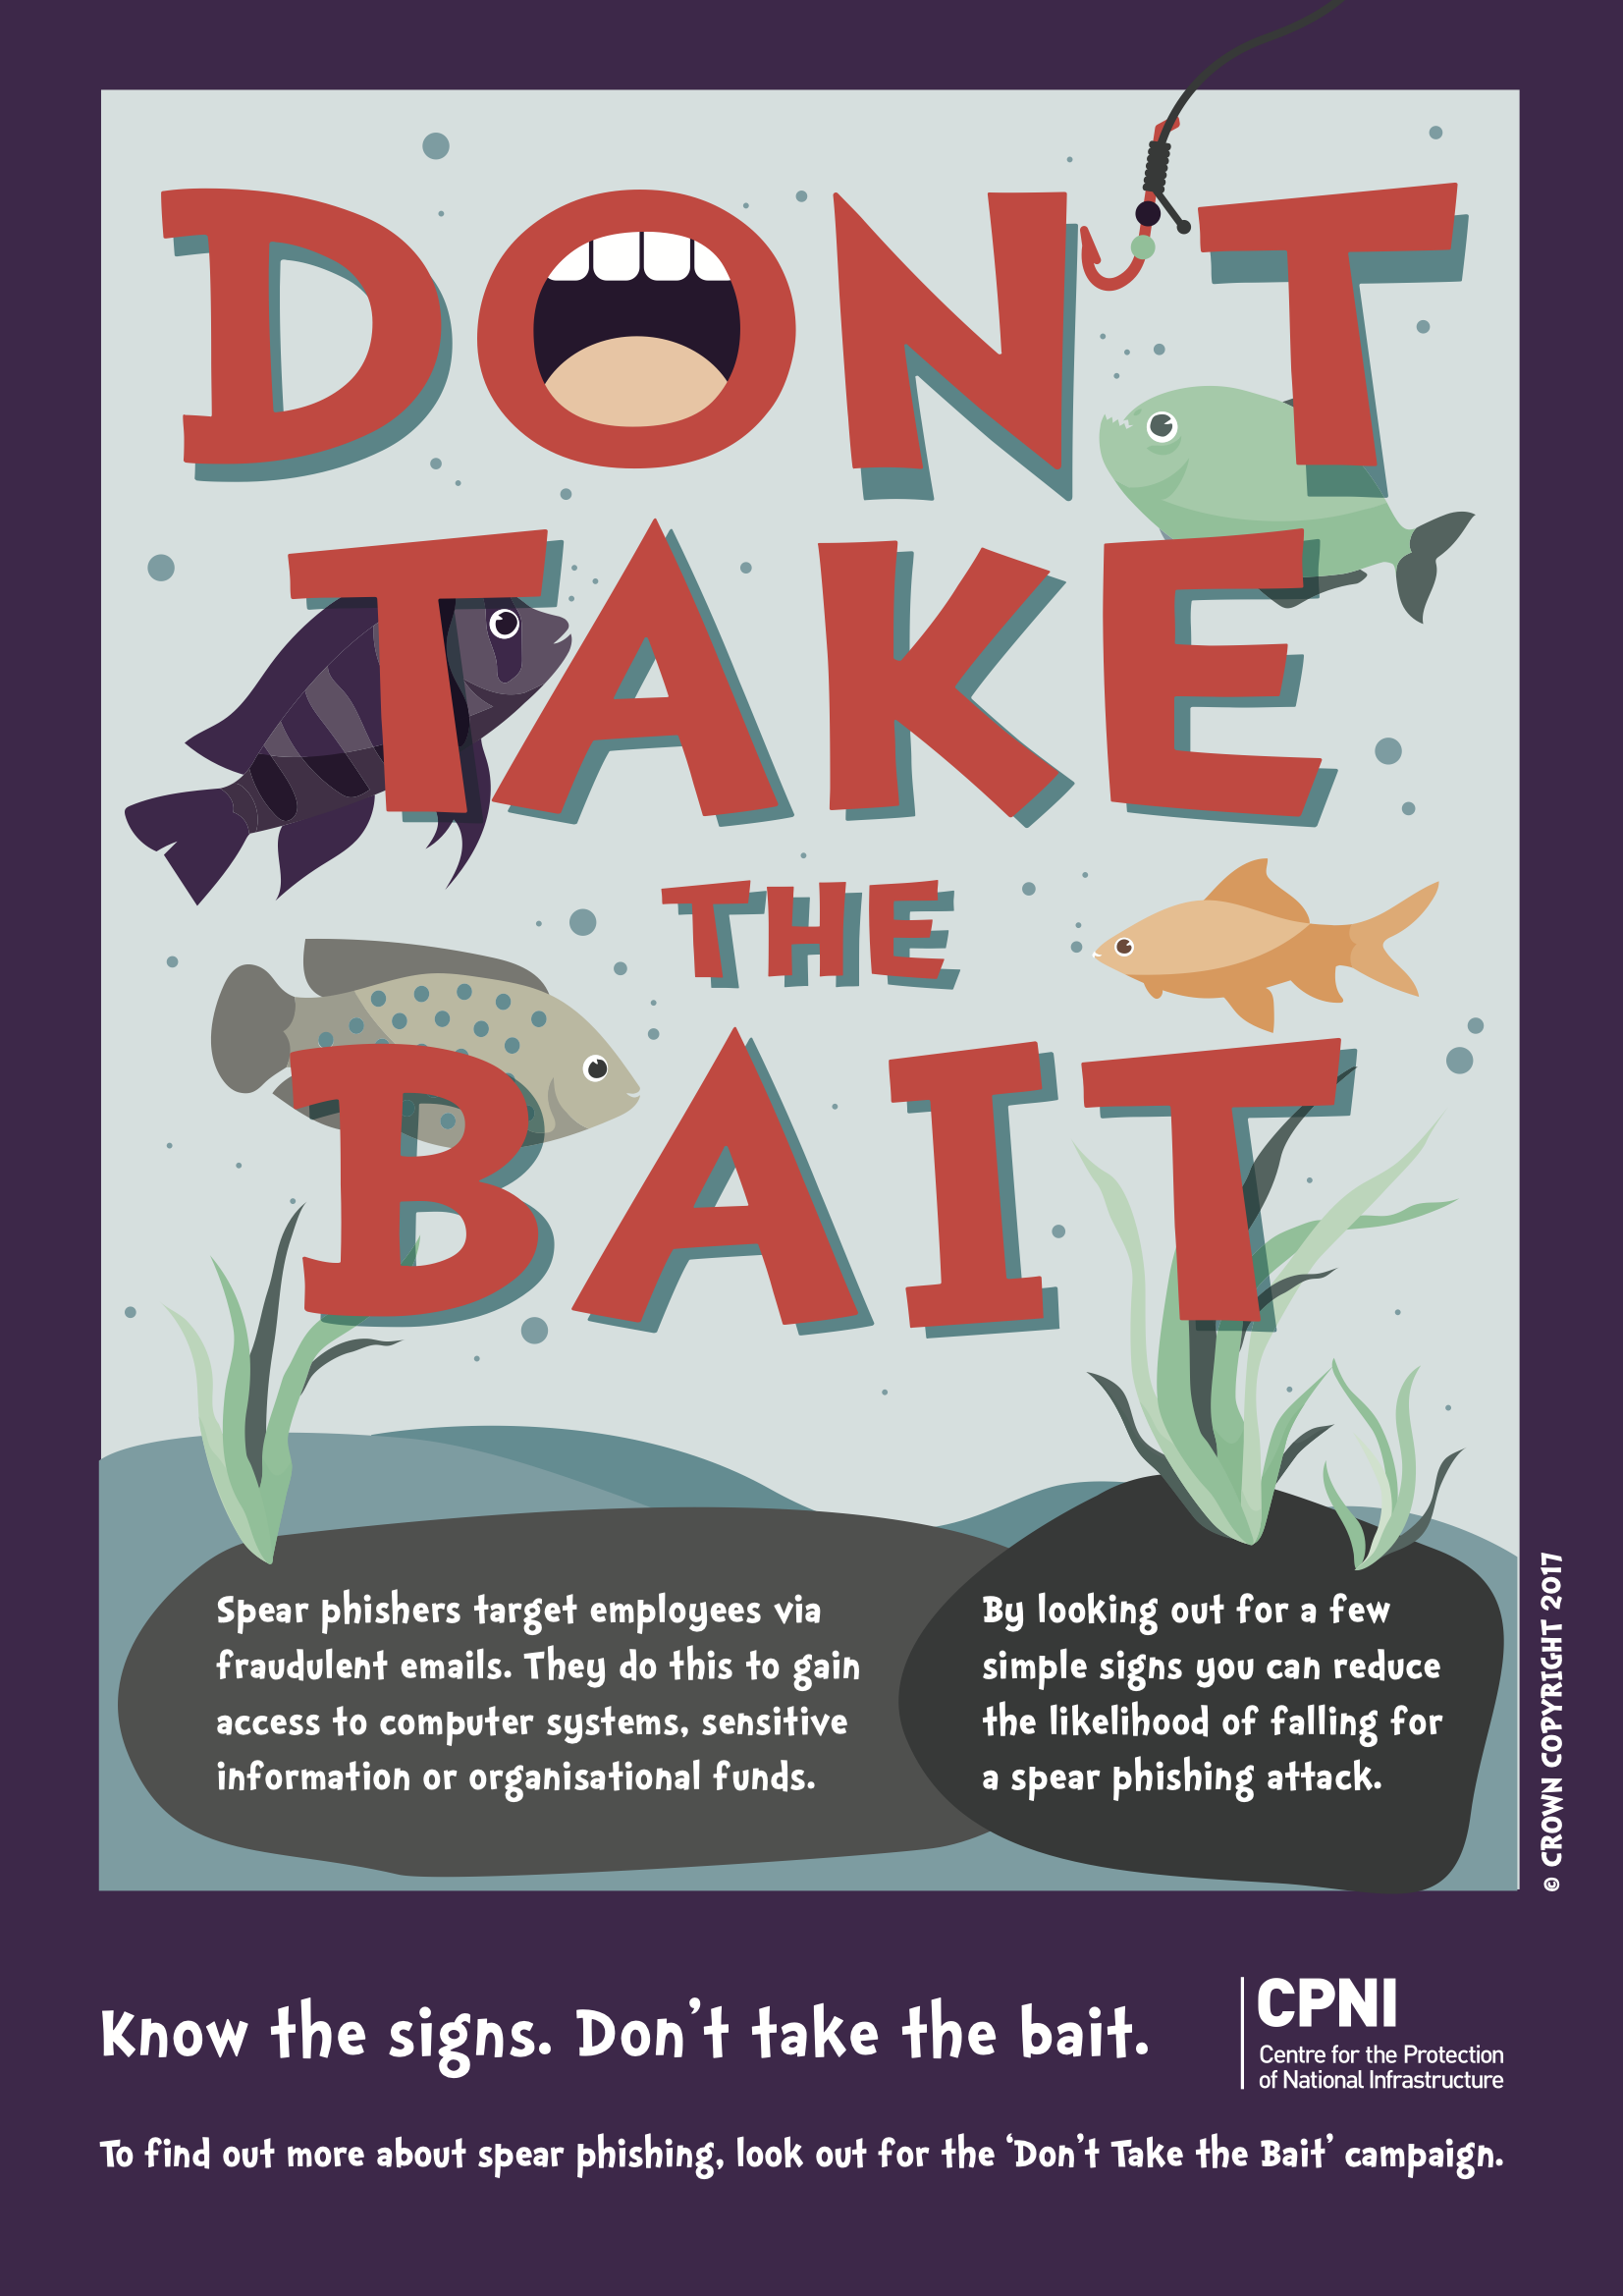 'Don't take the bait!' poster